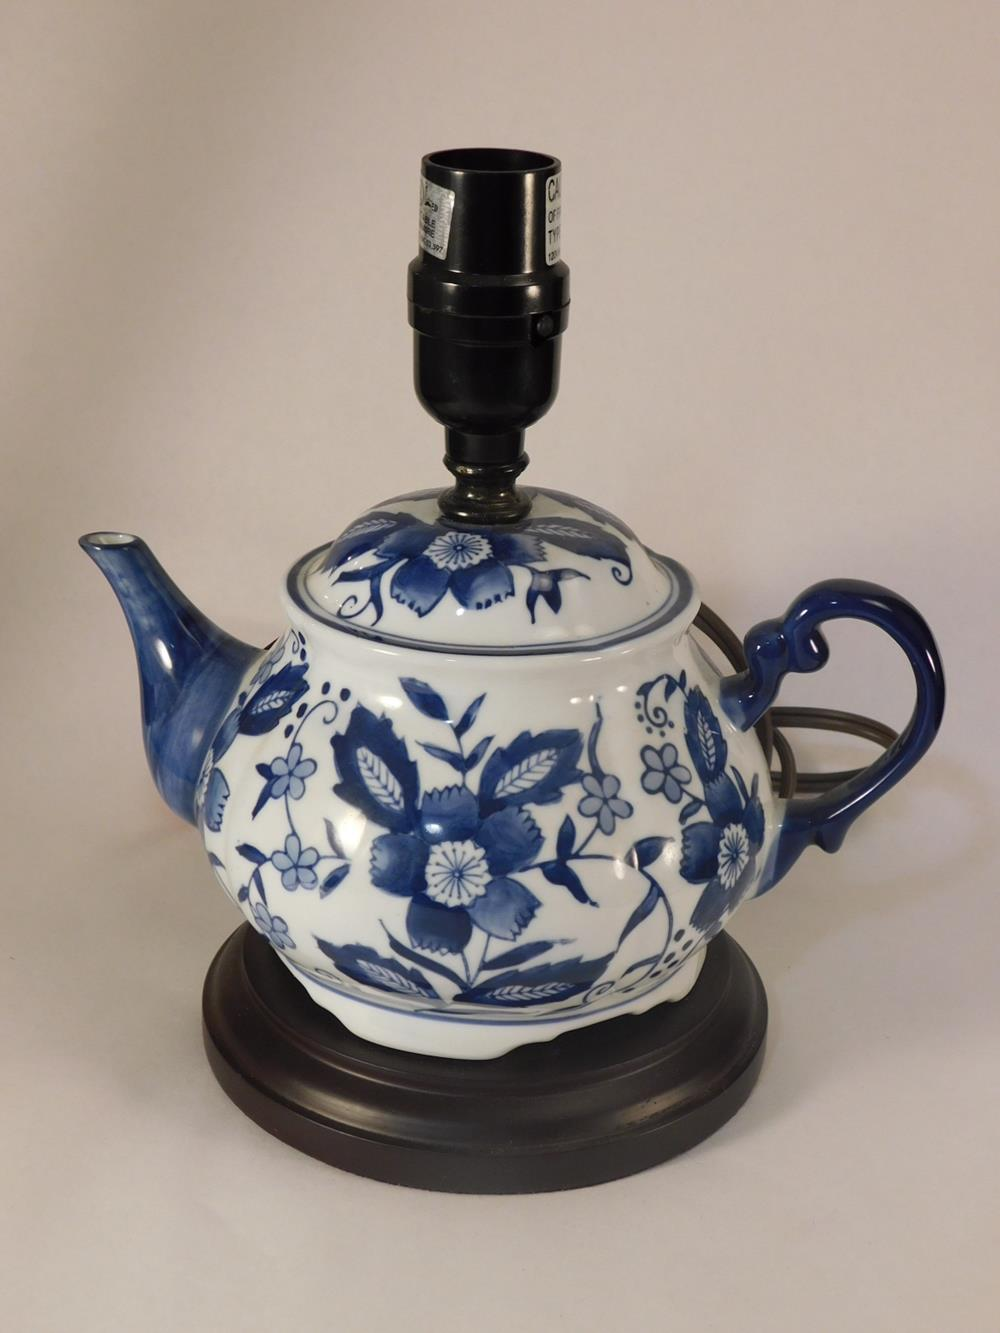 BLUE WILLOW STYLE TEAPOT LAMP